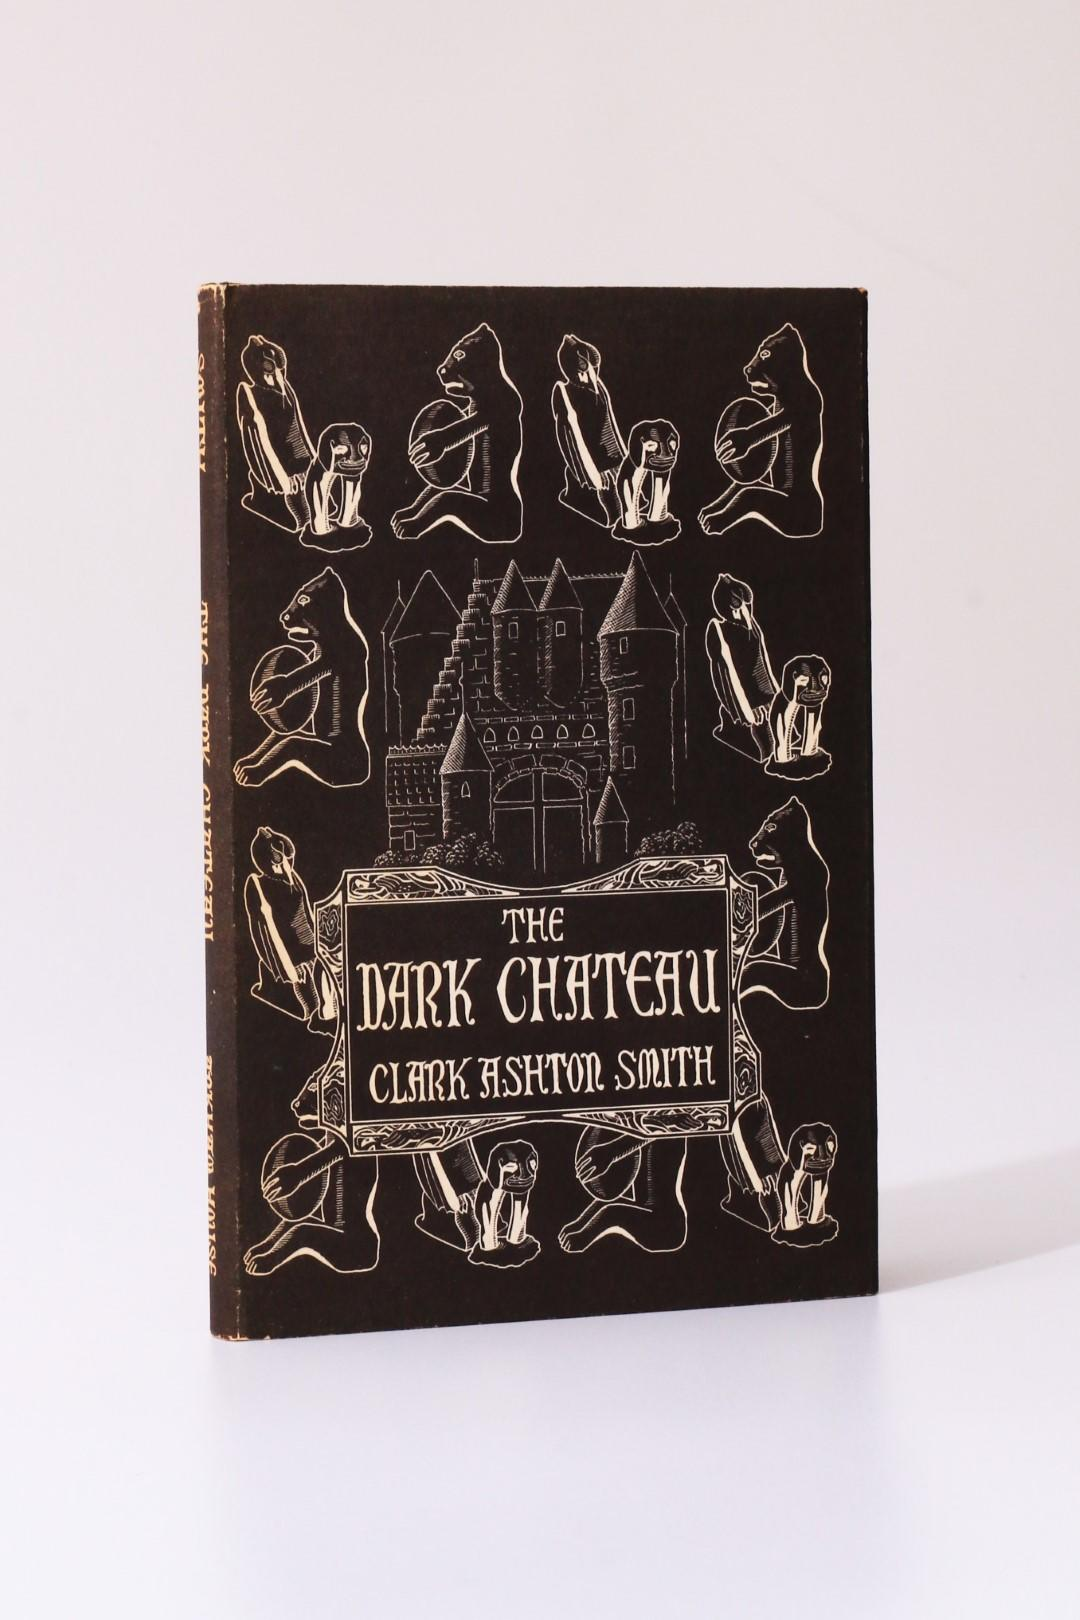 Clark Ashton Smith - The Dark Chateau - Arkham House, 1951, First Edition.